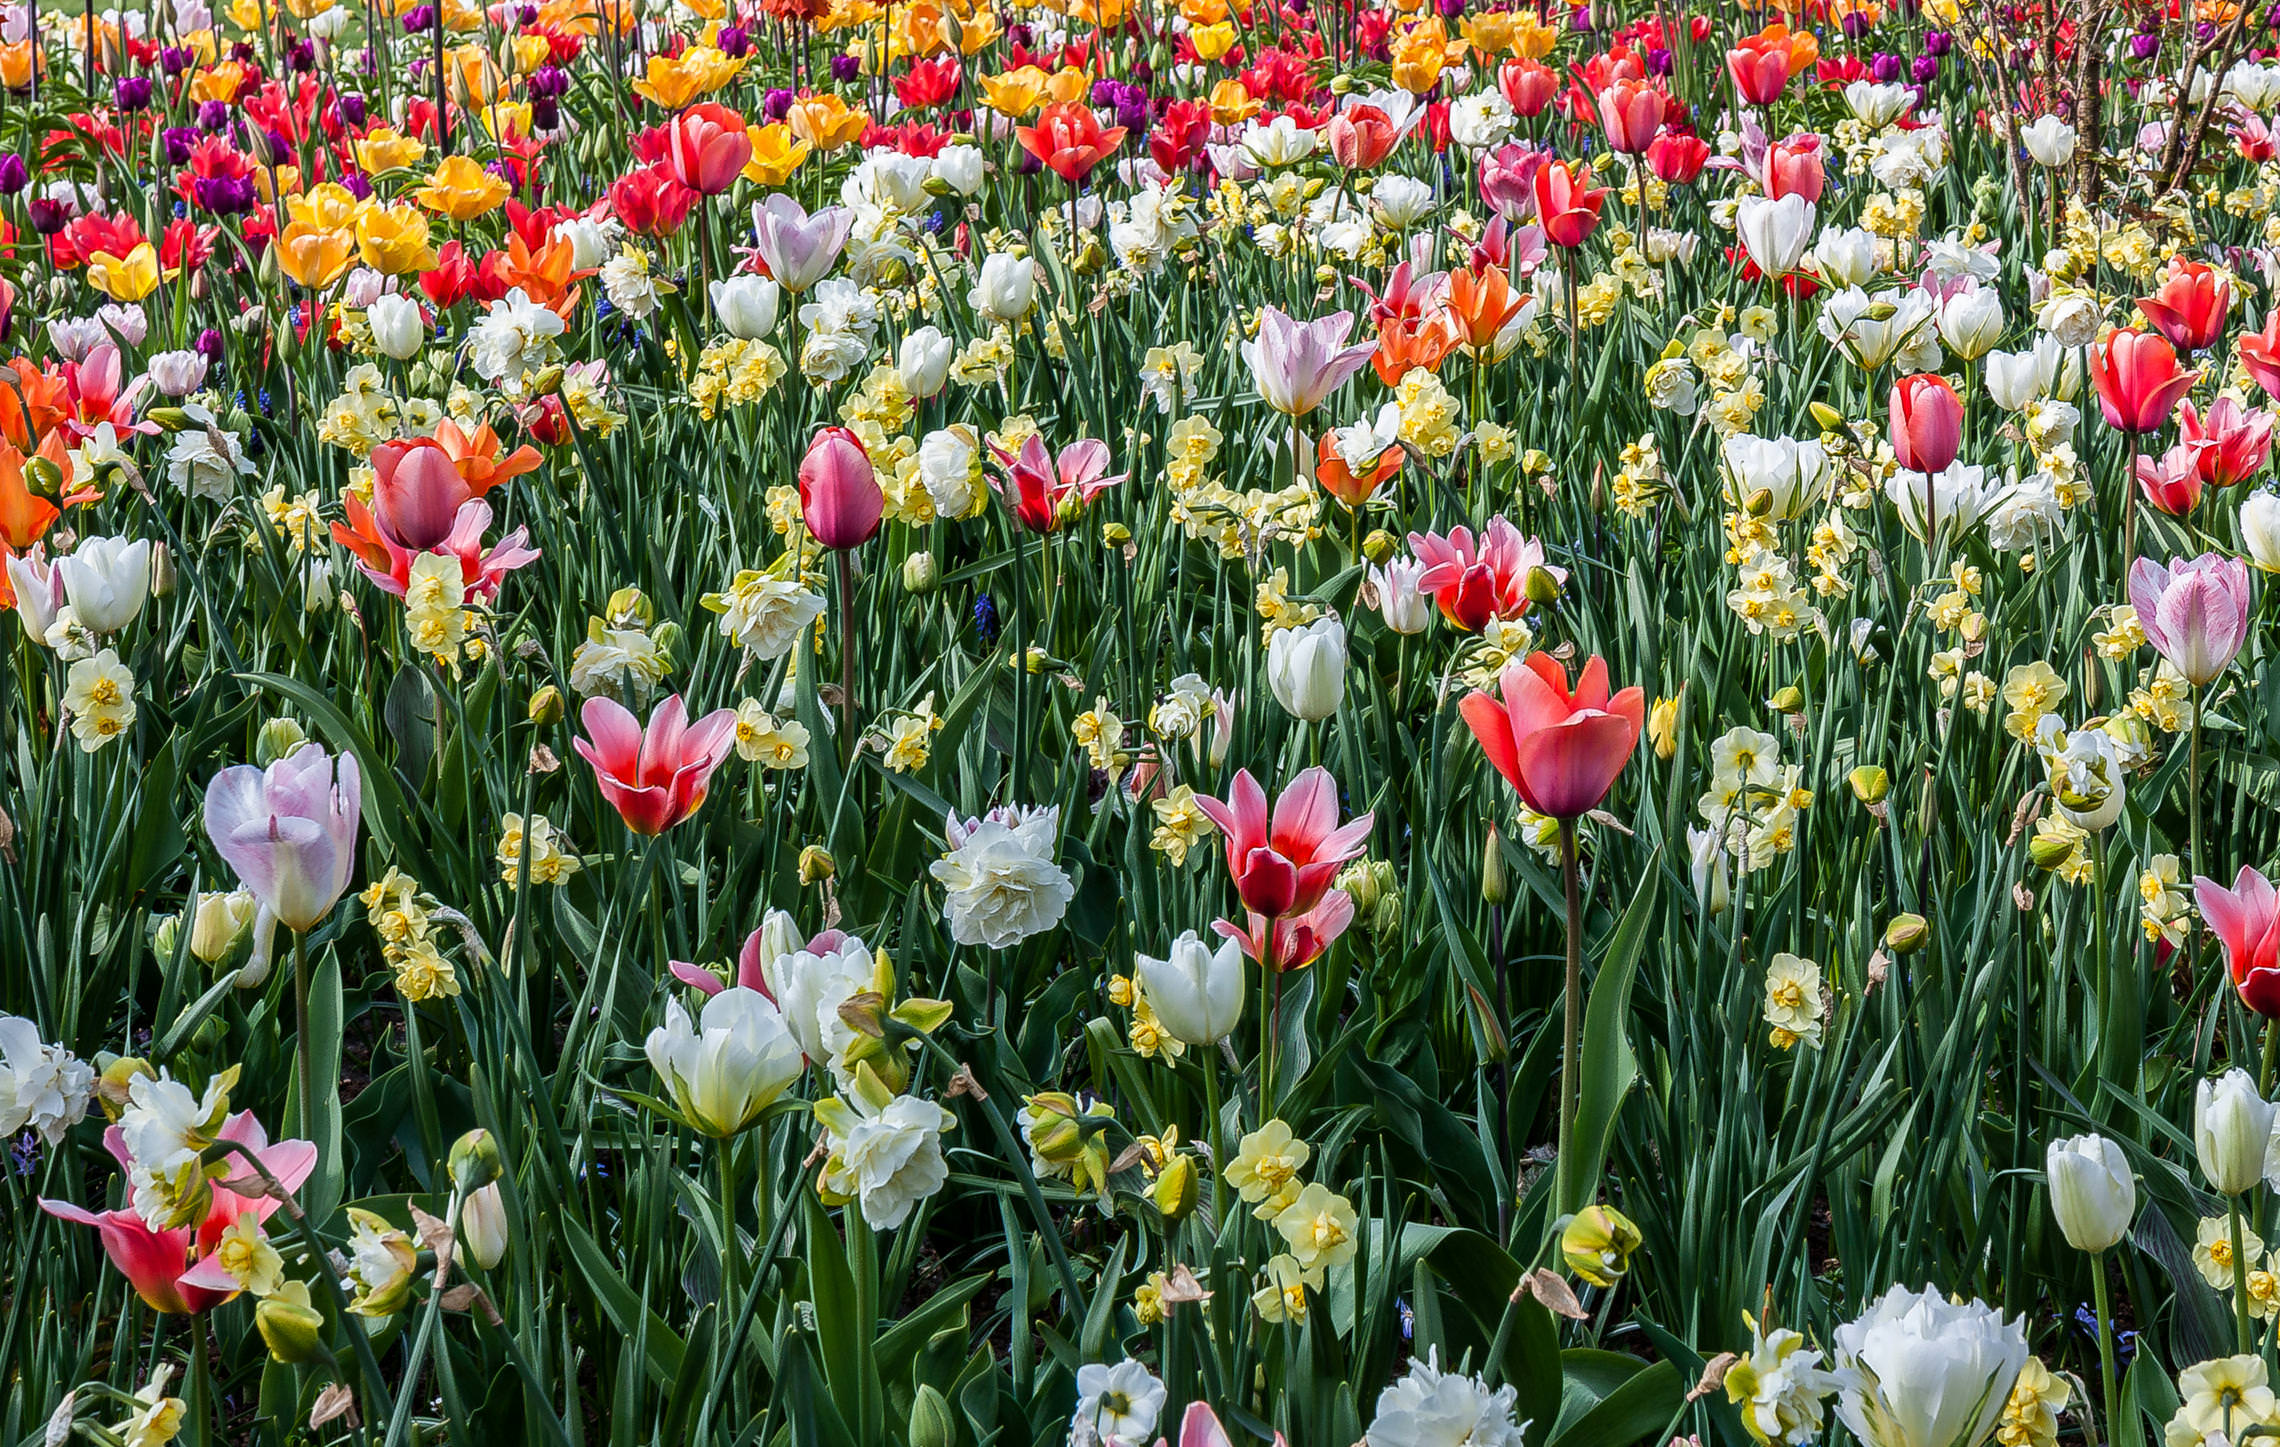 Tulips in Holland 04-2015 (4)